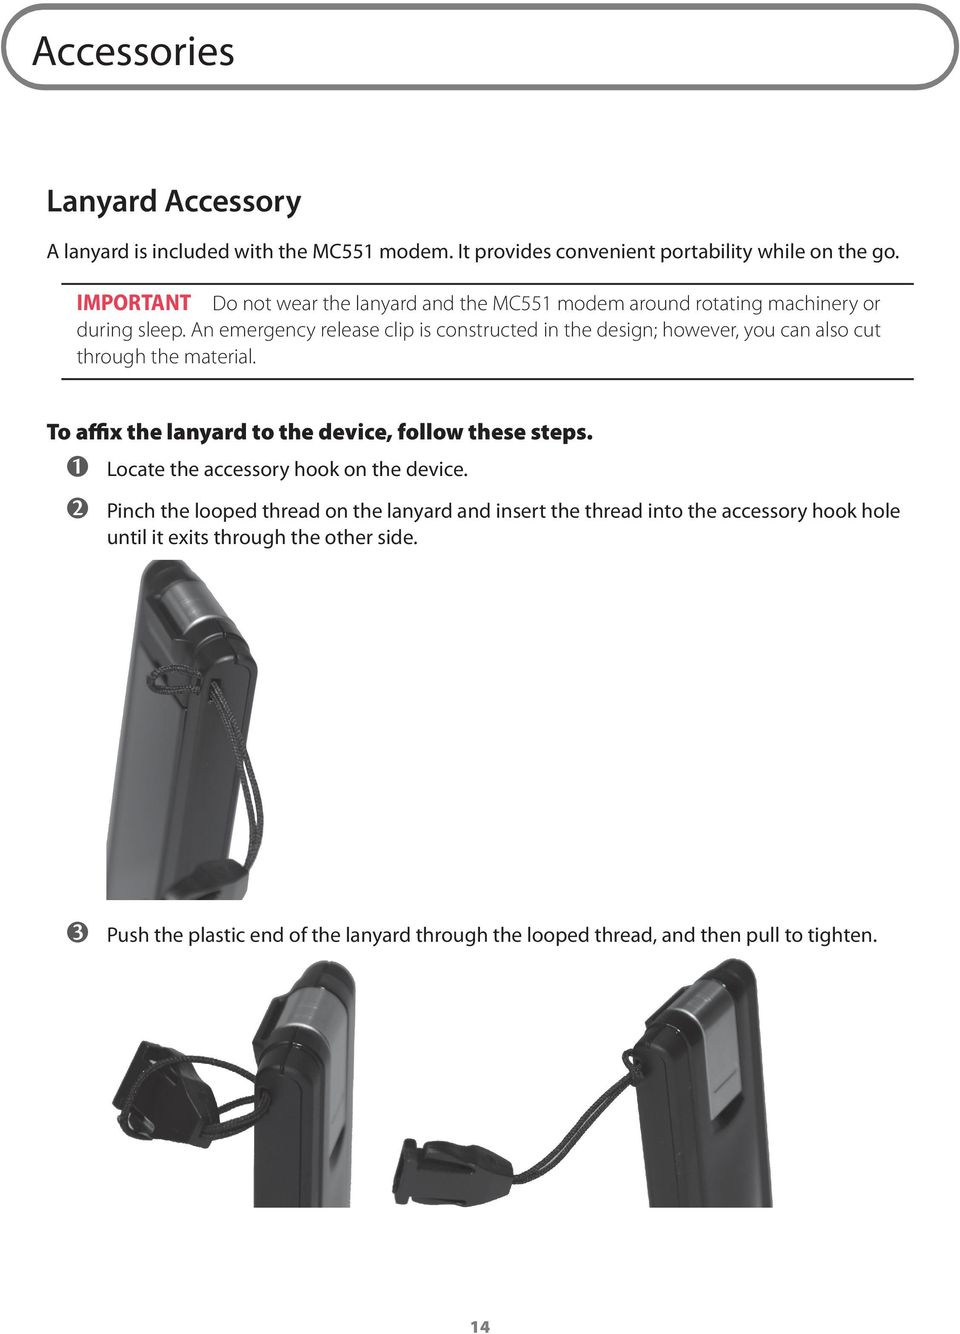 An emergency release clip is constructed in the design; however, you can also cut through the material. To affix the lanyard to the device, follow these steps.